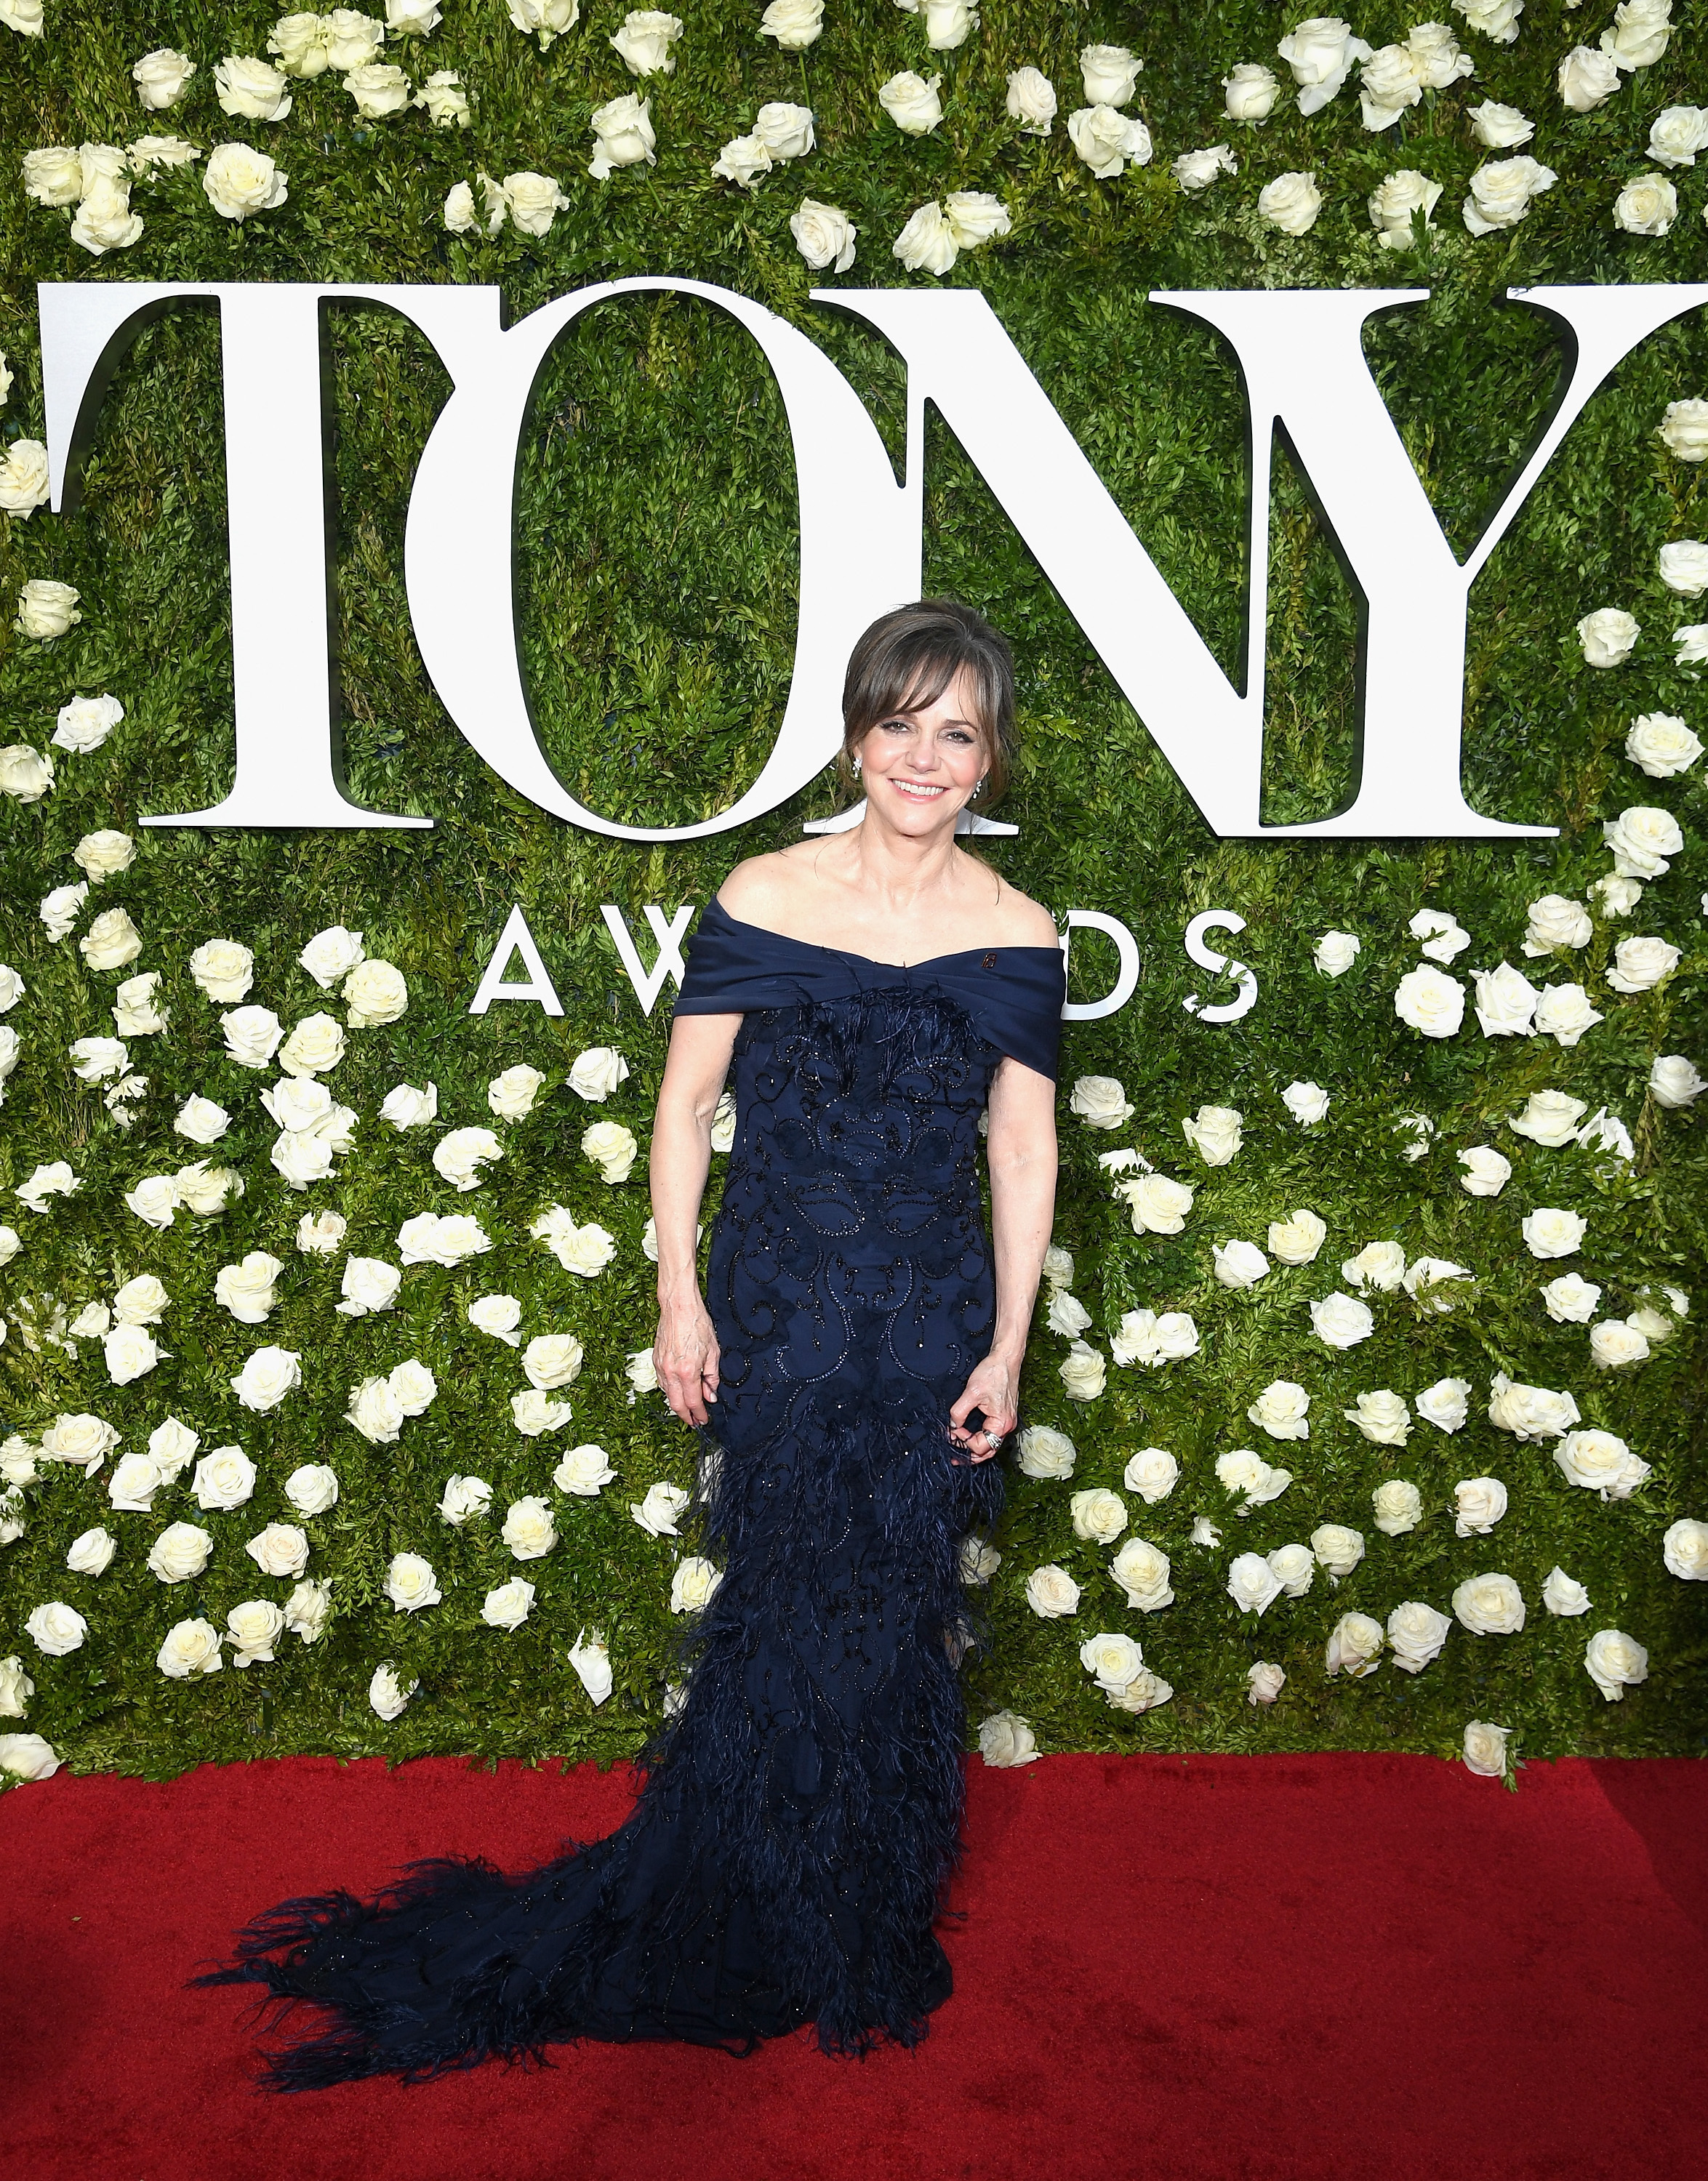 Sally Field arrives at the Tony Awards at Radio City Music Hall in New York City on June 11, 2017.